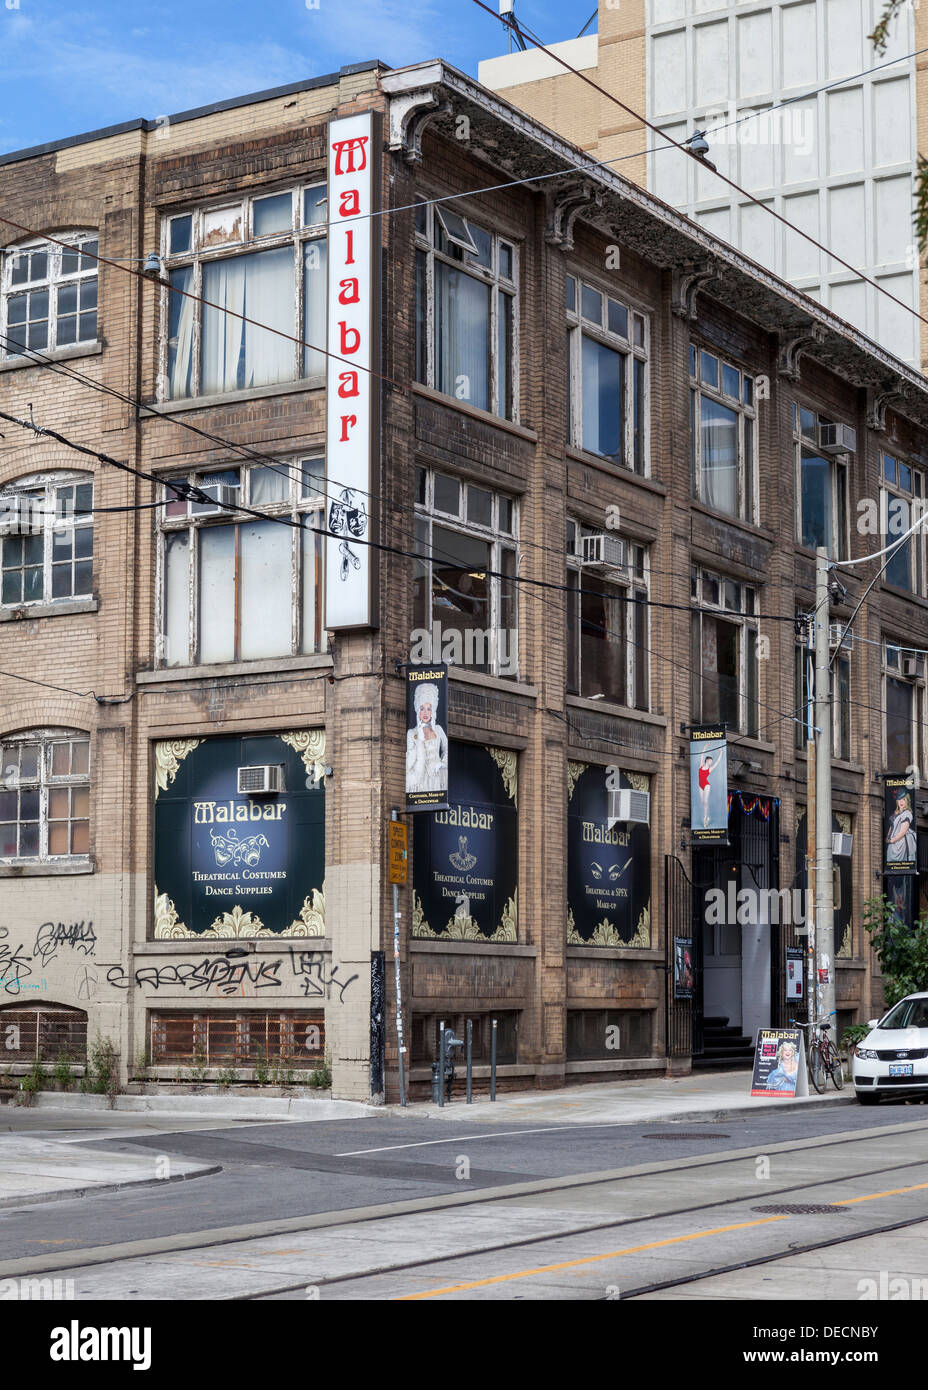 Malabar - business selling theatrical costumes and dance supplies in McCaul Street Toronto - Stock Image